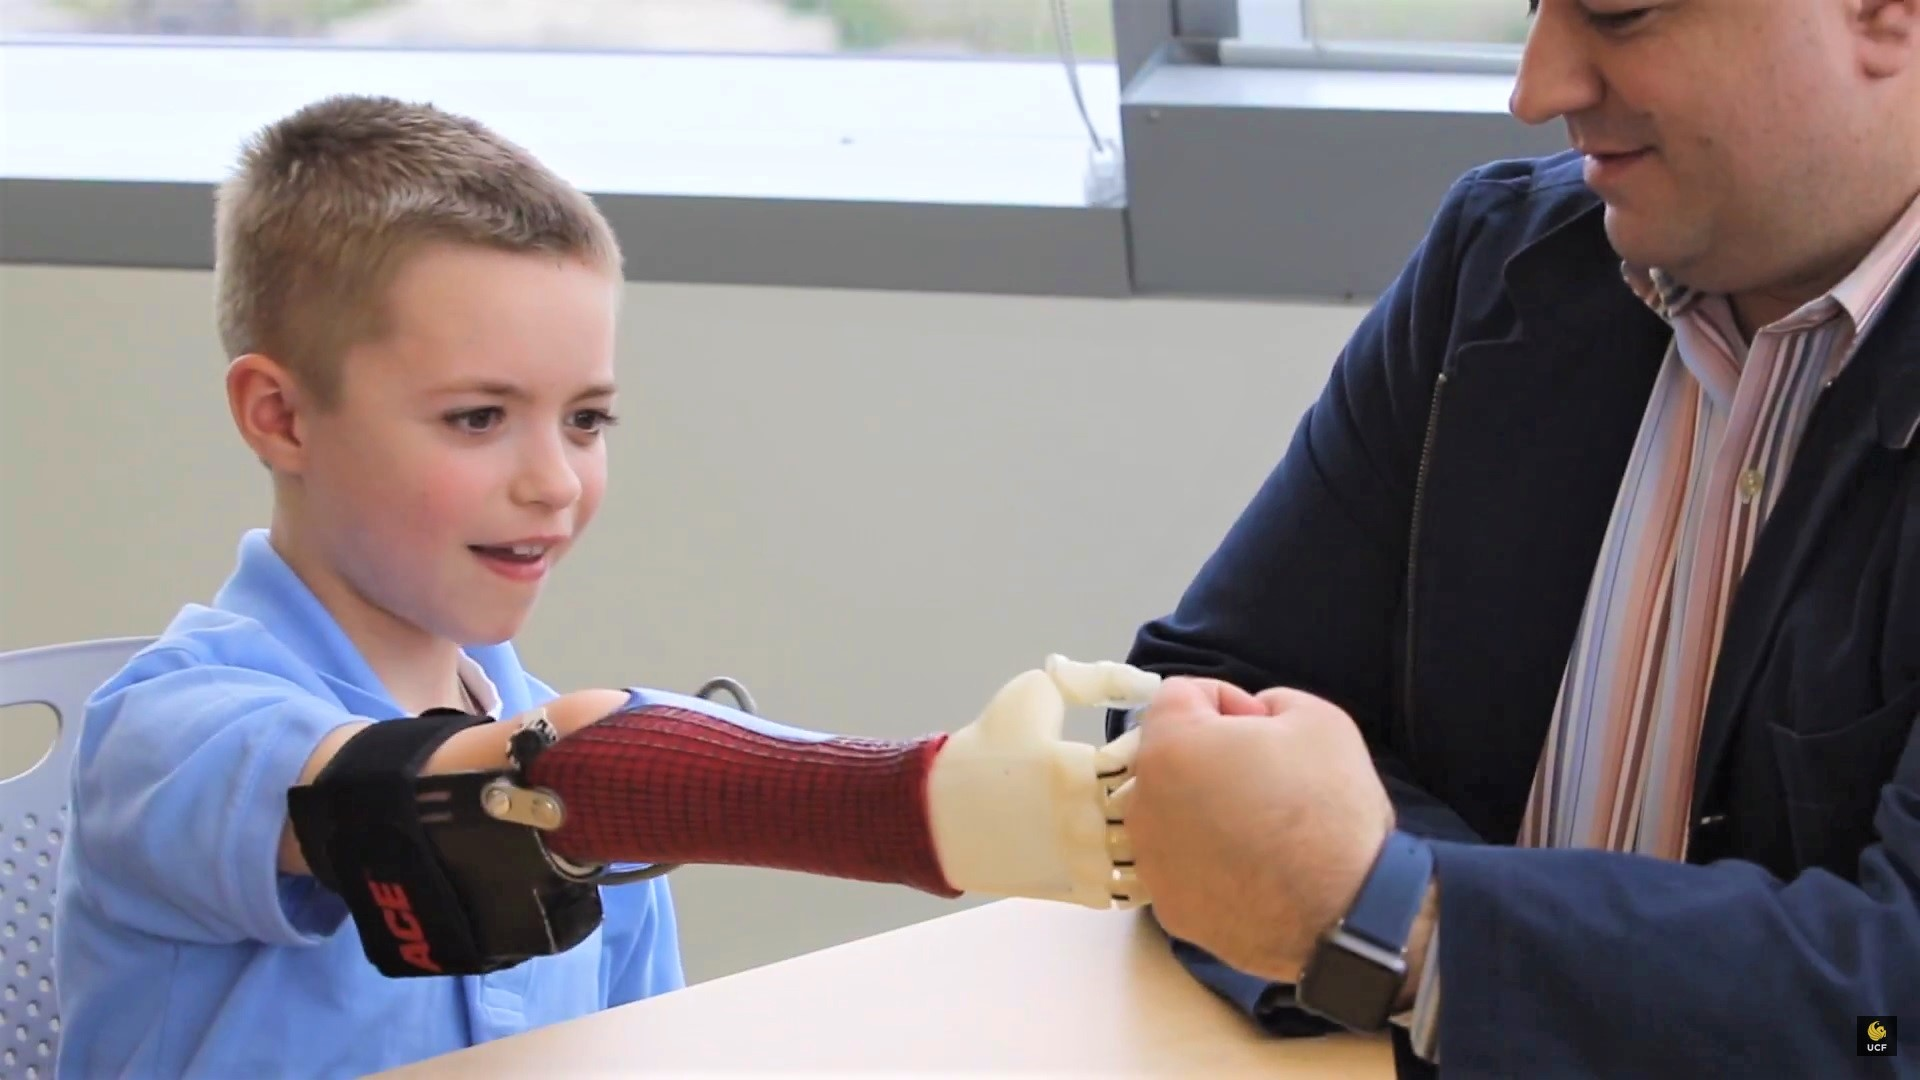 3D Printed Prosthetic Hand: The Most Promising Projects | All3DP